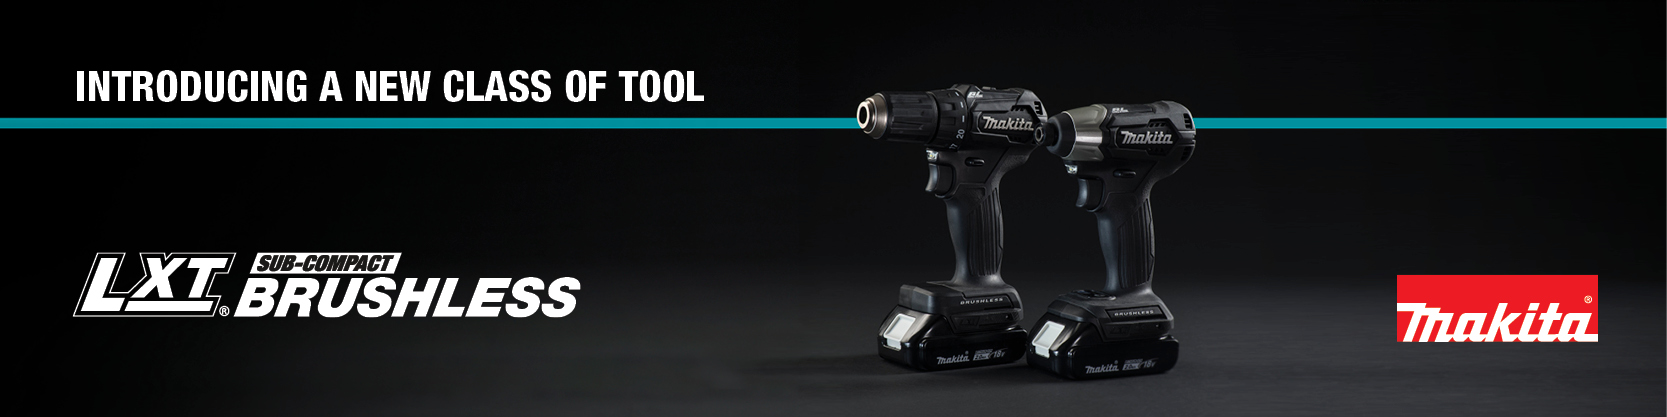 Introducing a new class of tool. Banner for MAKITA LXT SUB-COMPACT BRUSHLESS power tools